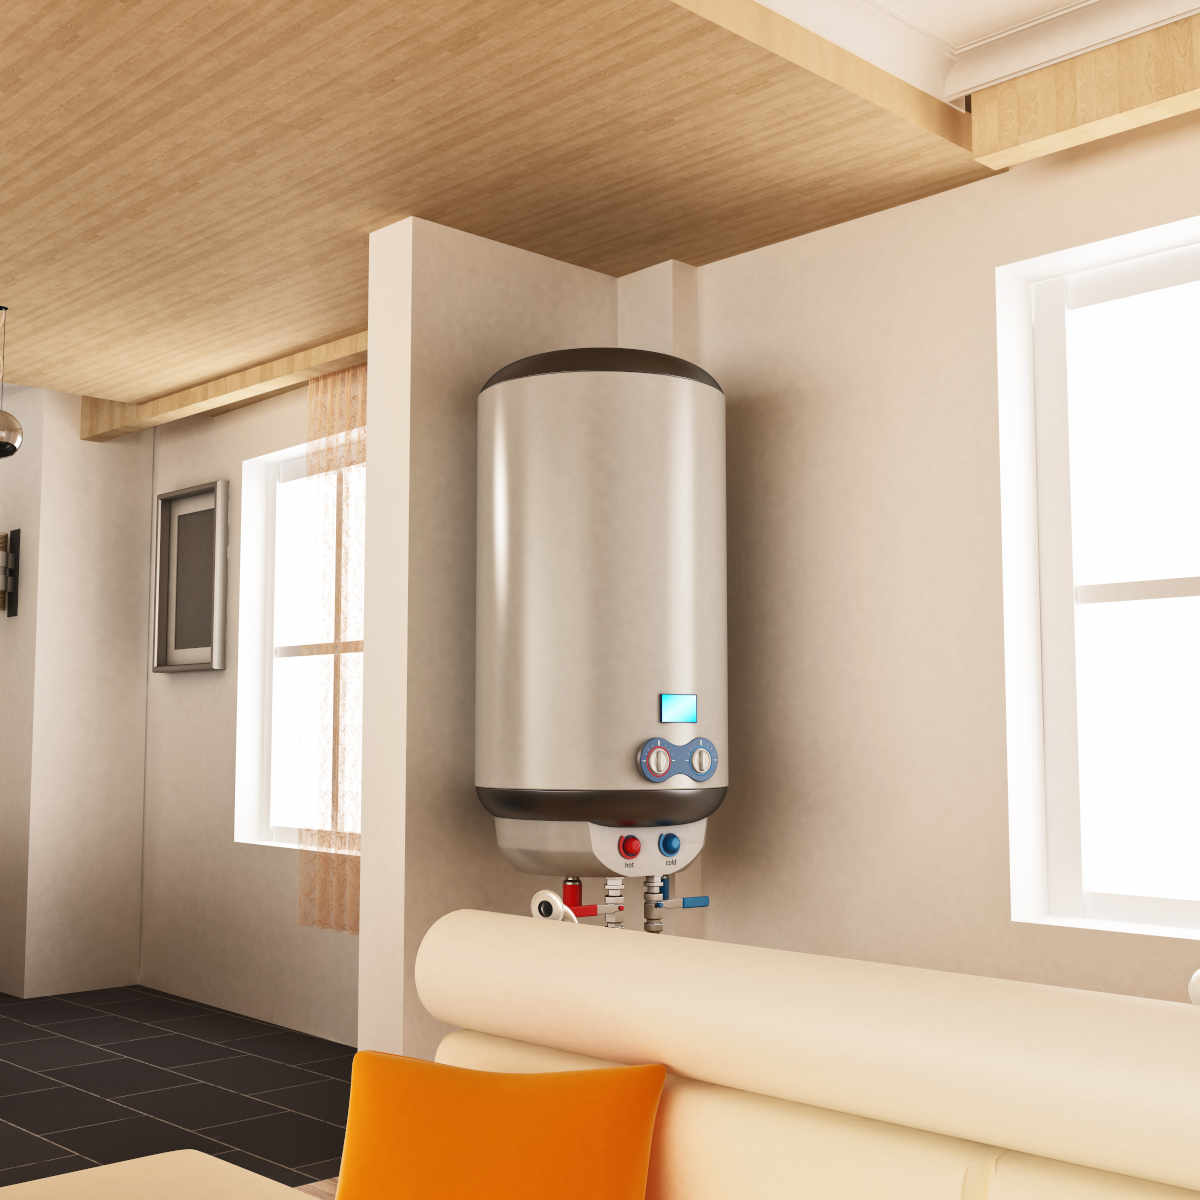 Water Heater Consumes Too Much Power: Find, Fix & Save $$$